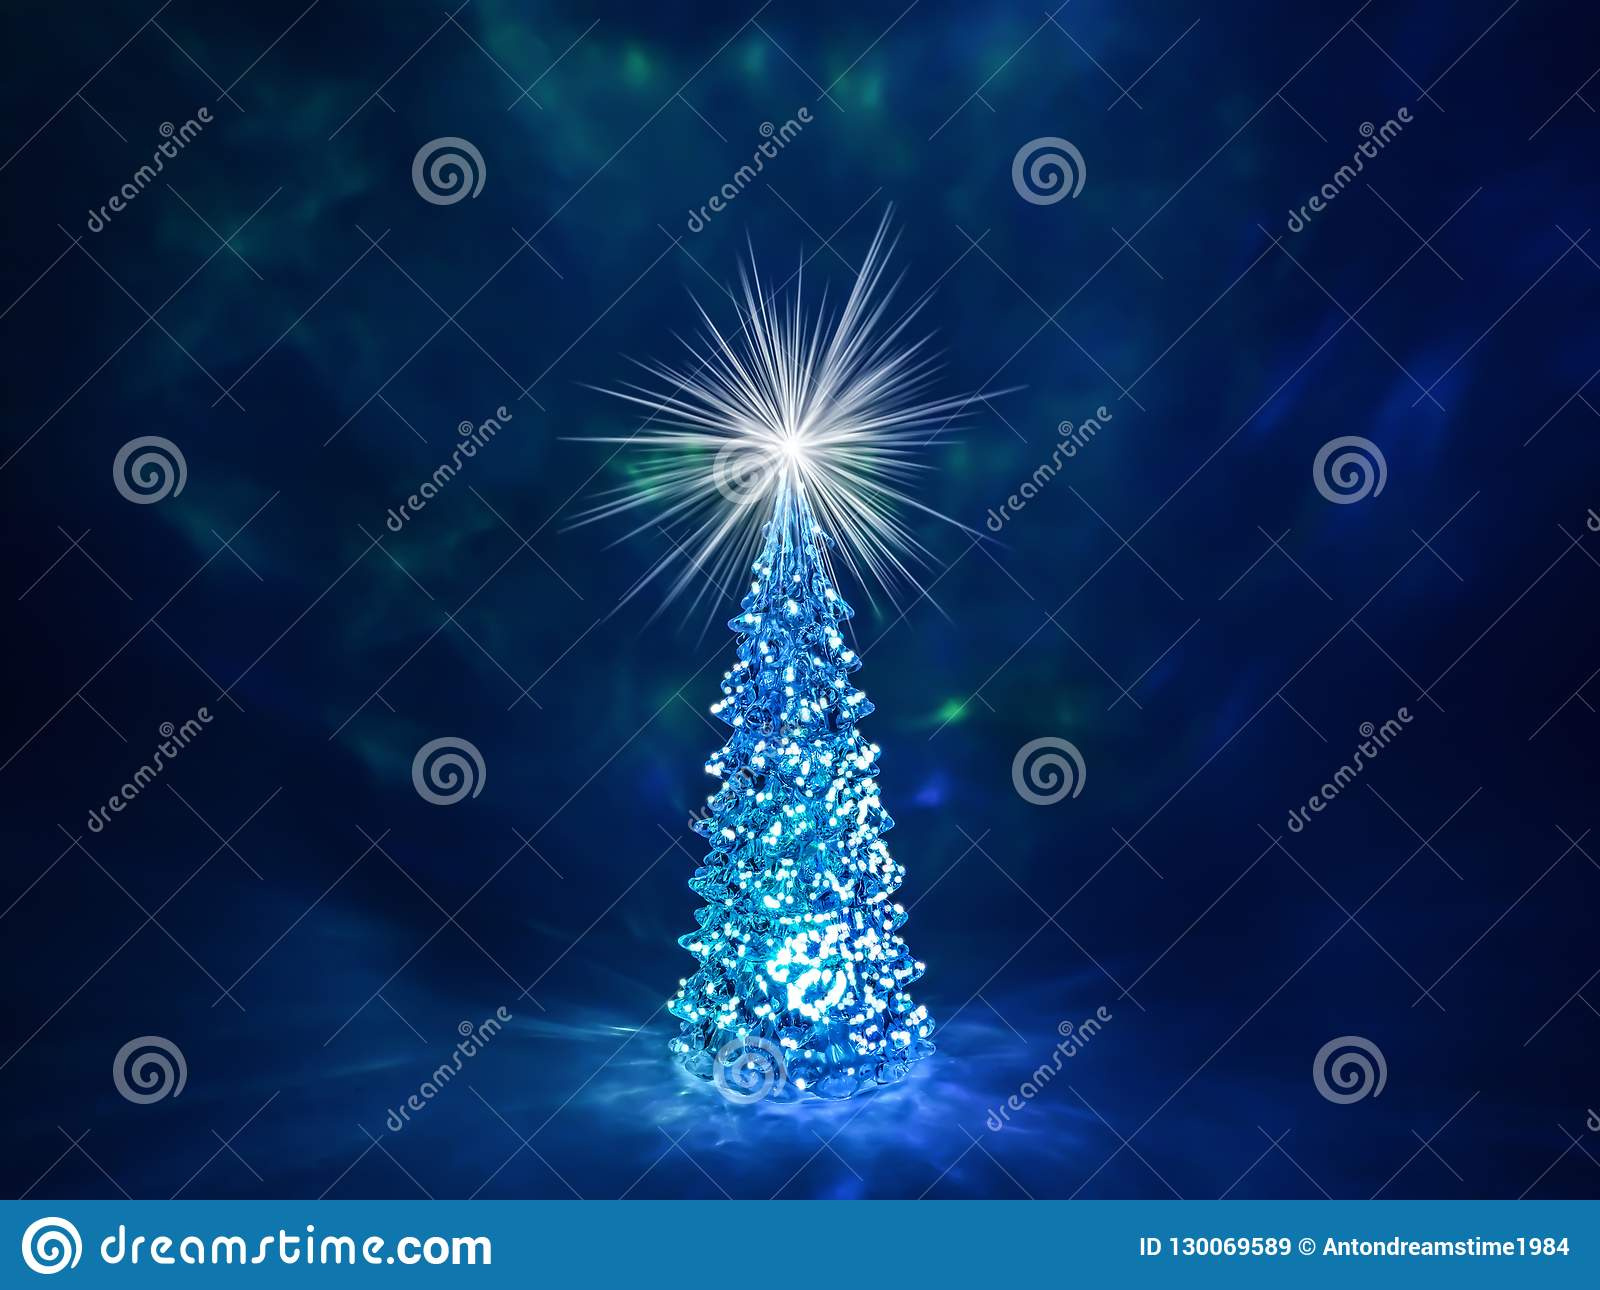 Christmas Tree With Glowing Lights On A Garland And A Shining Star